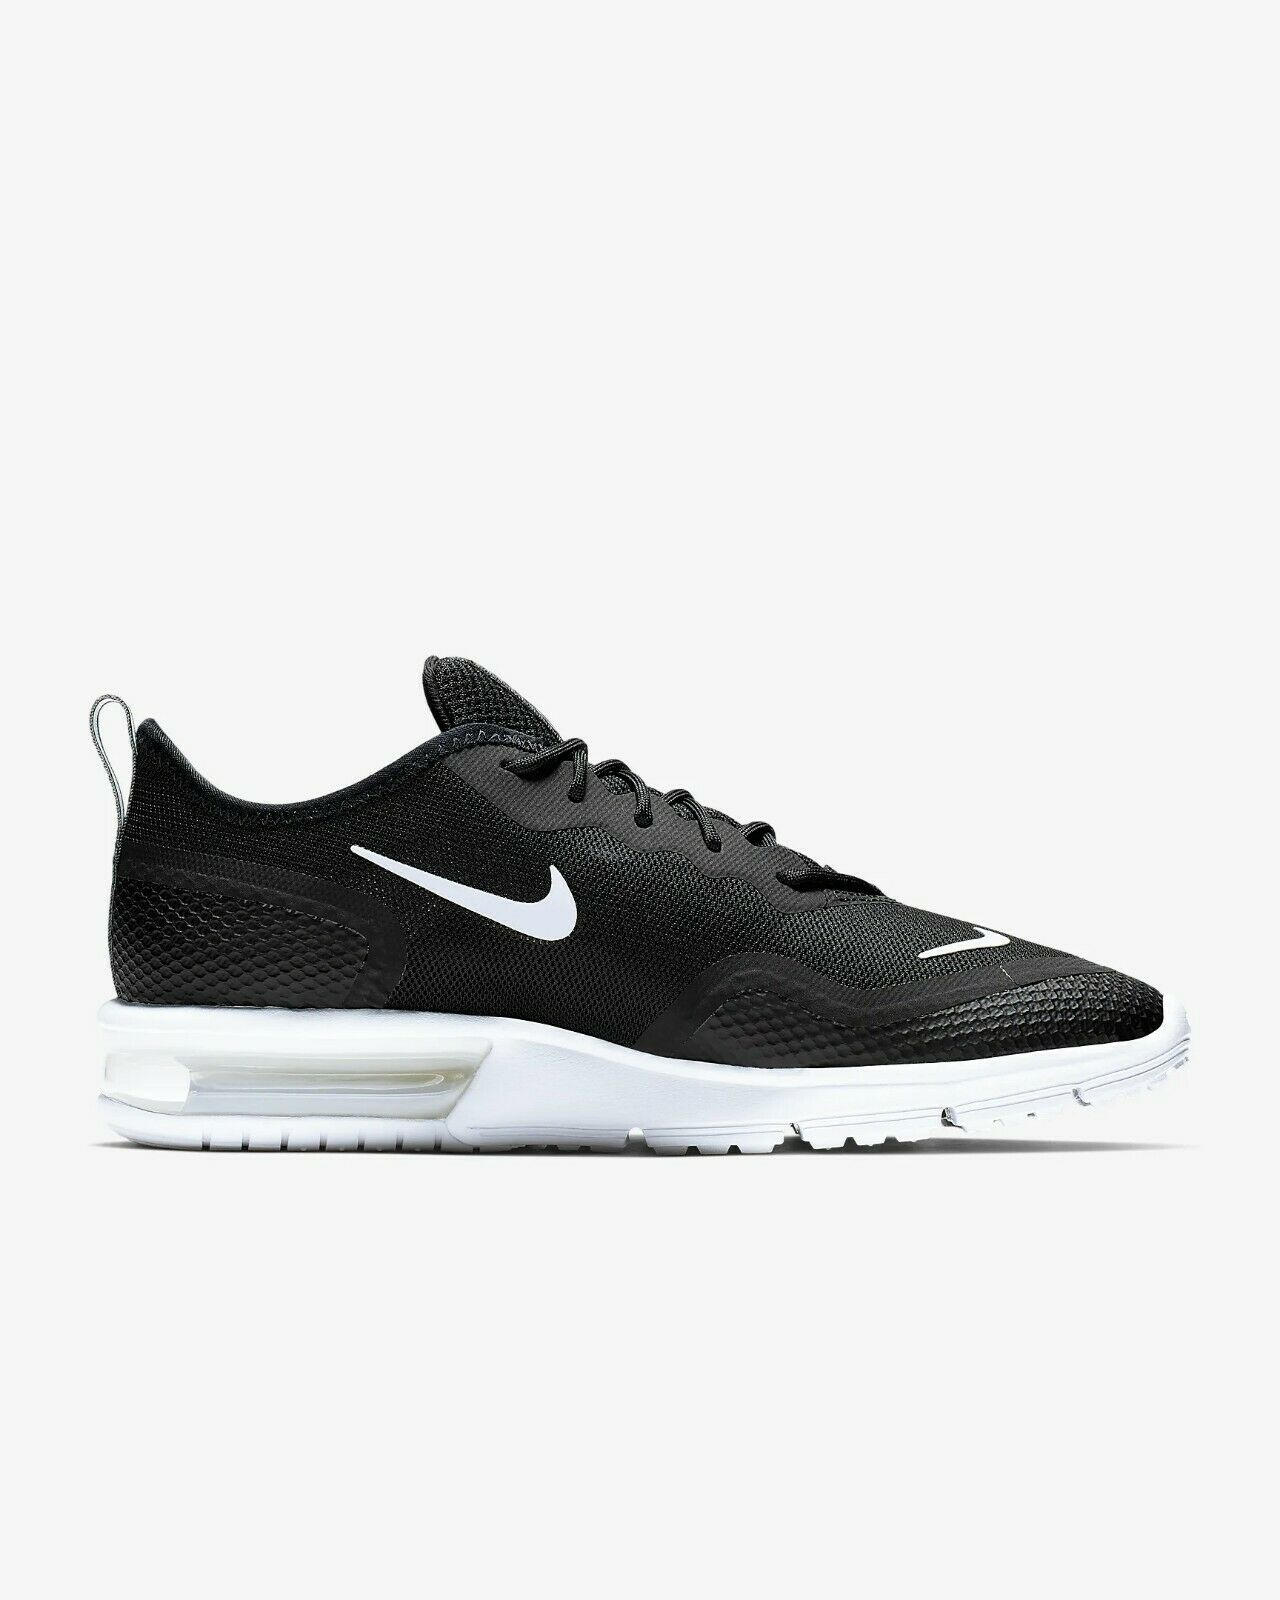 [Nike] BQ8822-001 Air Max Sequent 4.5 Men Running shoes Sneakers Black